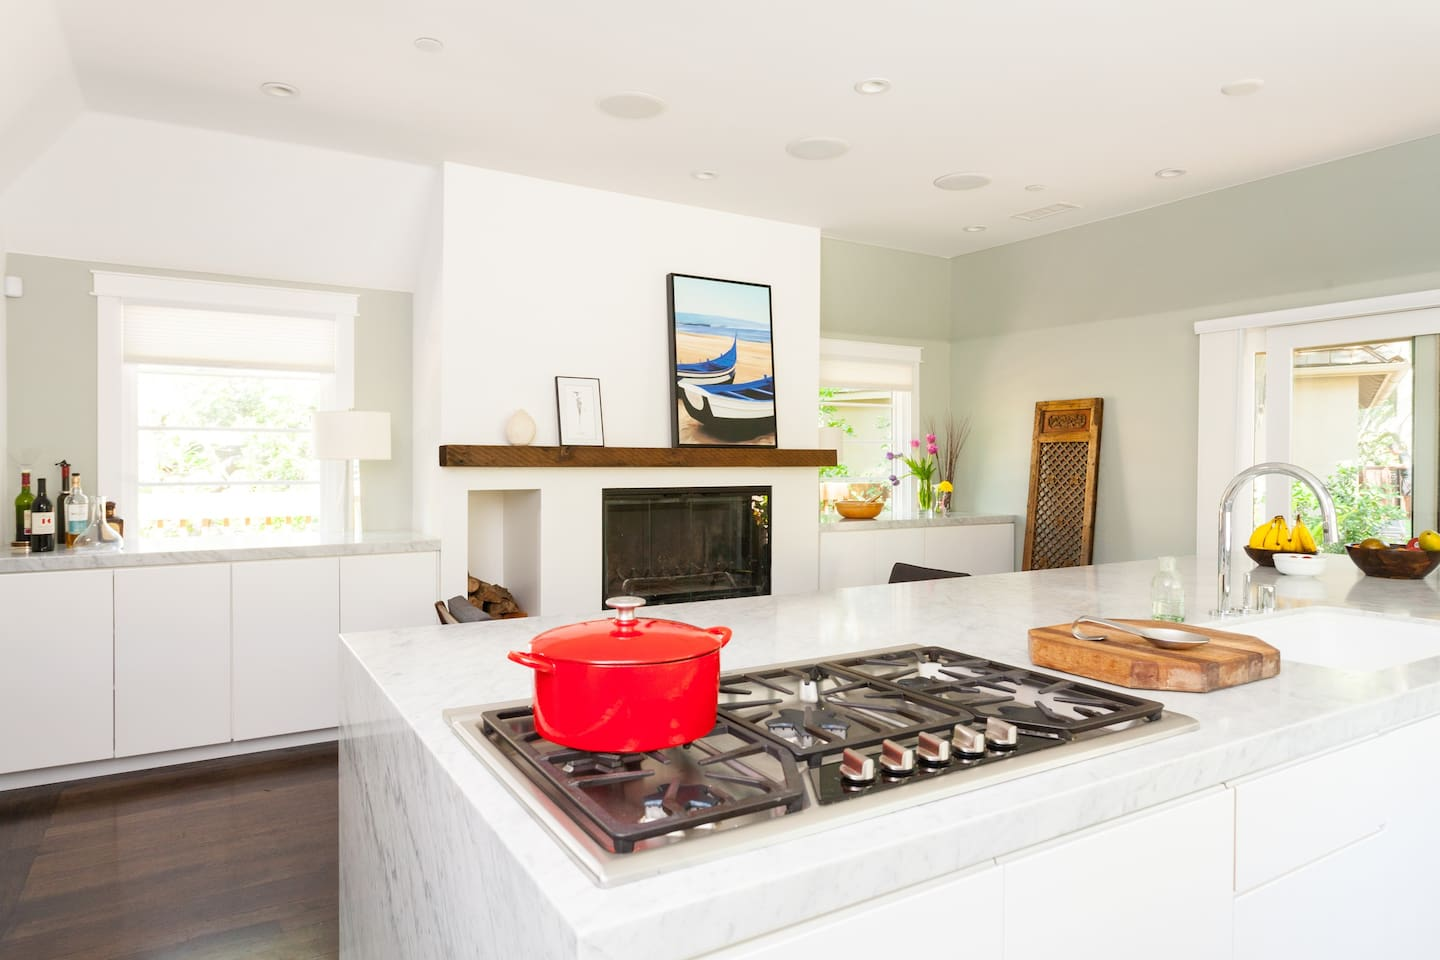 Kitchen the size of a 2 car garage and with a fireplace in it.